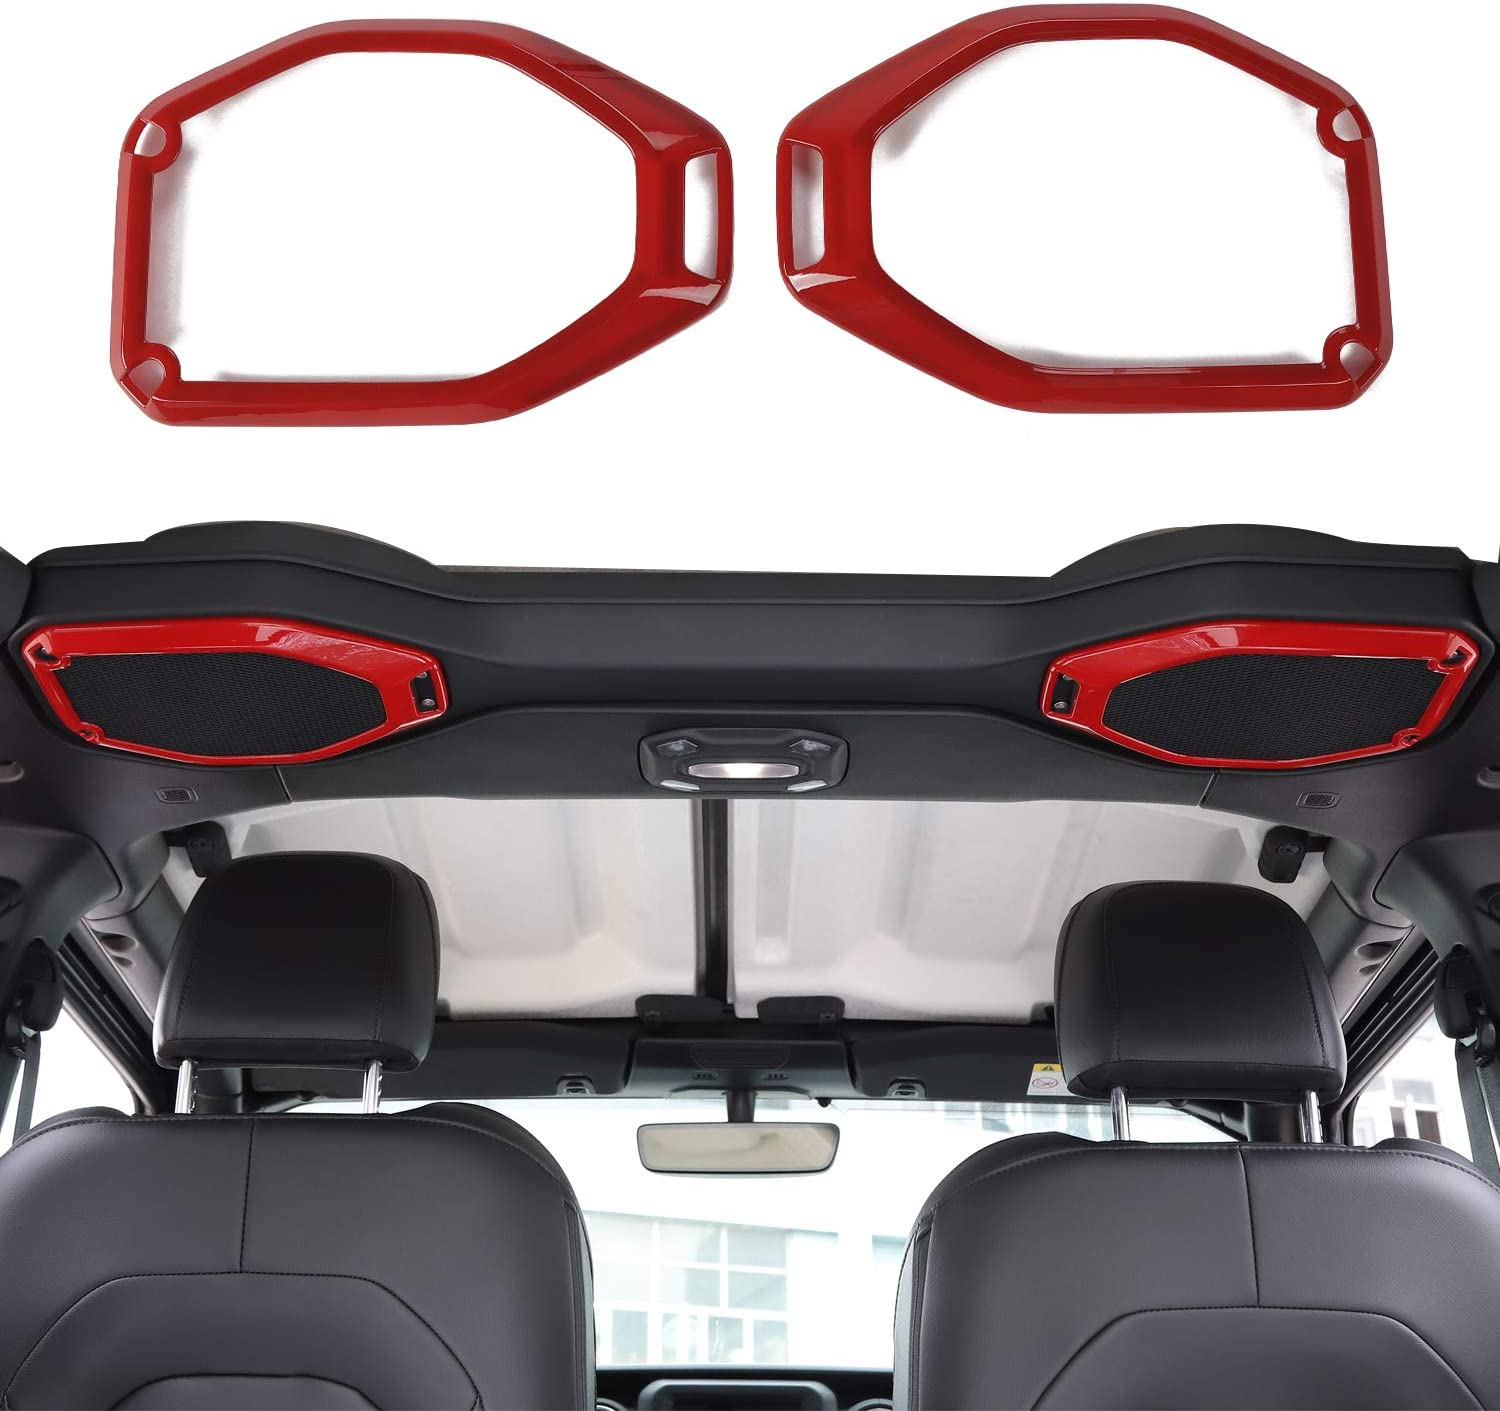 RT-TCZ Car Inner Top Roof Speaker Cover Trim Decor Ring for 2018 2019 2020 Jeep Wrangler JL JLU & 2020 Jeep Gladiator JT, for Jeep JL Interior Accessories(Red)